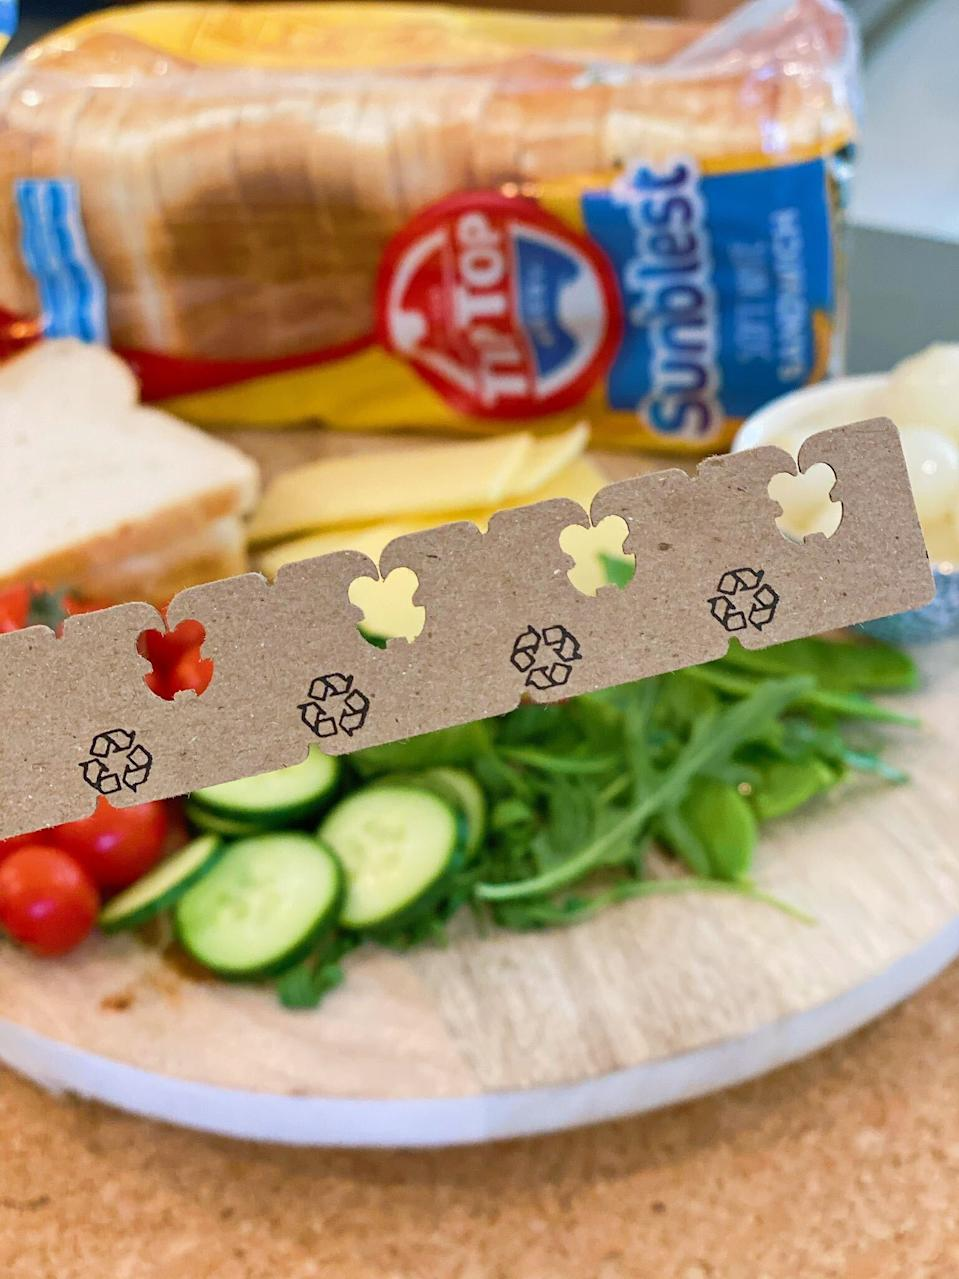 Image of Tip Top aussie bread brand new cardboard recyclable bread tags replacing plastic